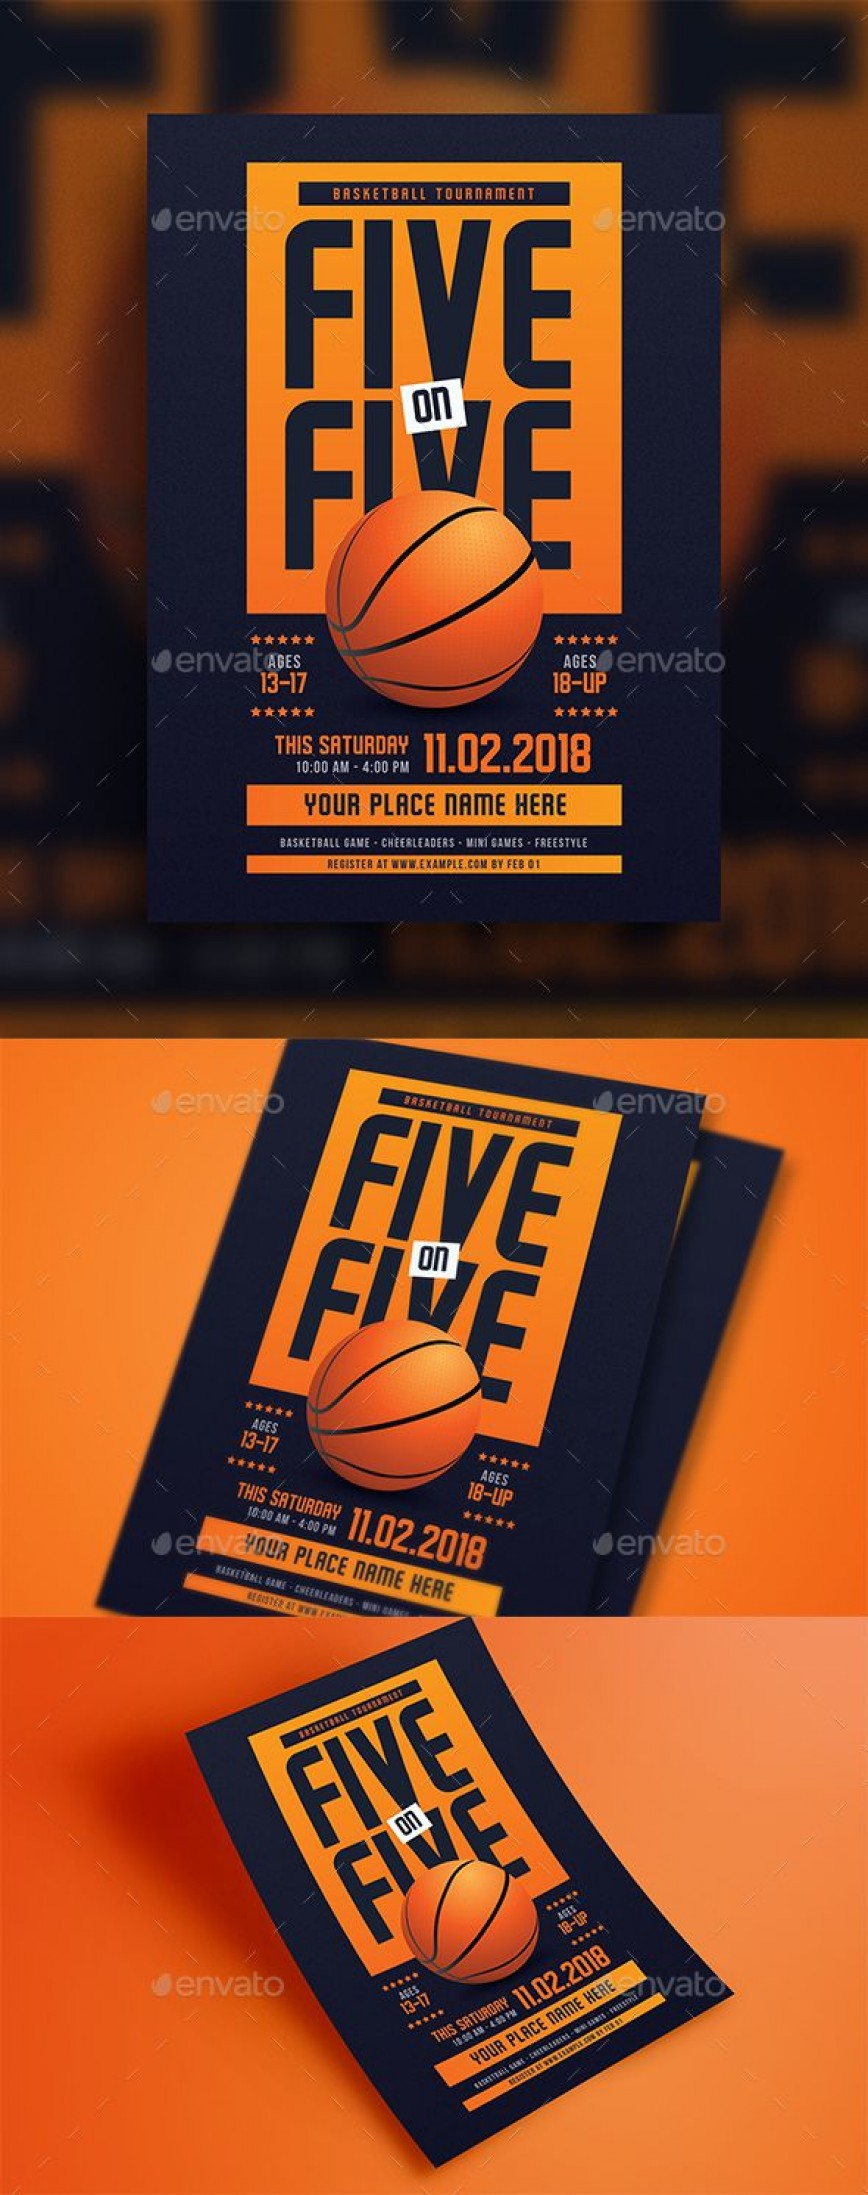 009 Striking Basketball Tournament Flyer Template Highest Quality  3 On Free868